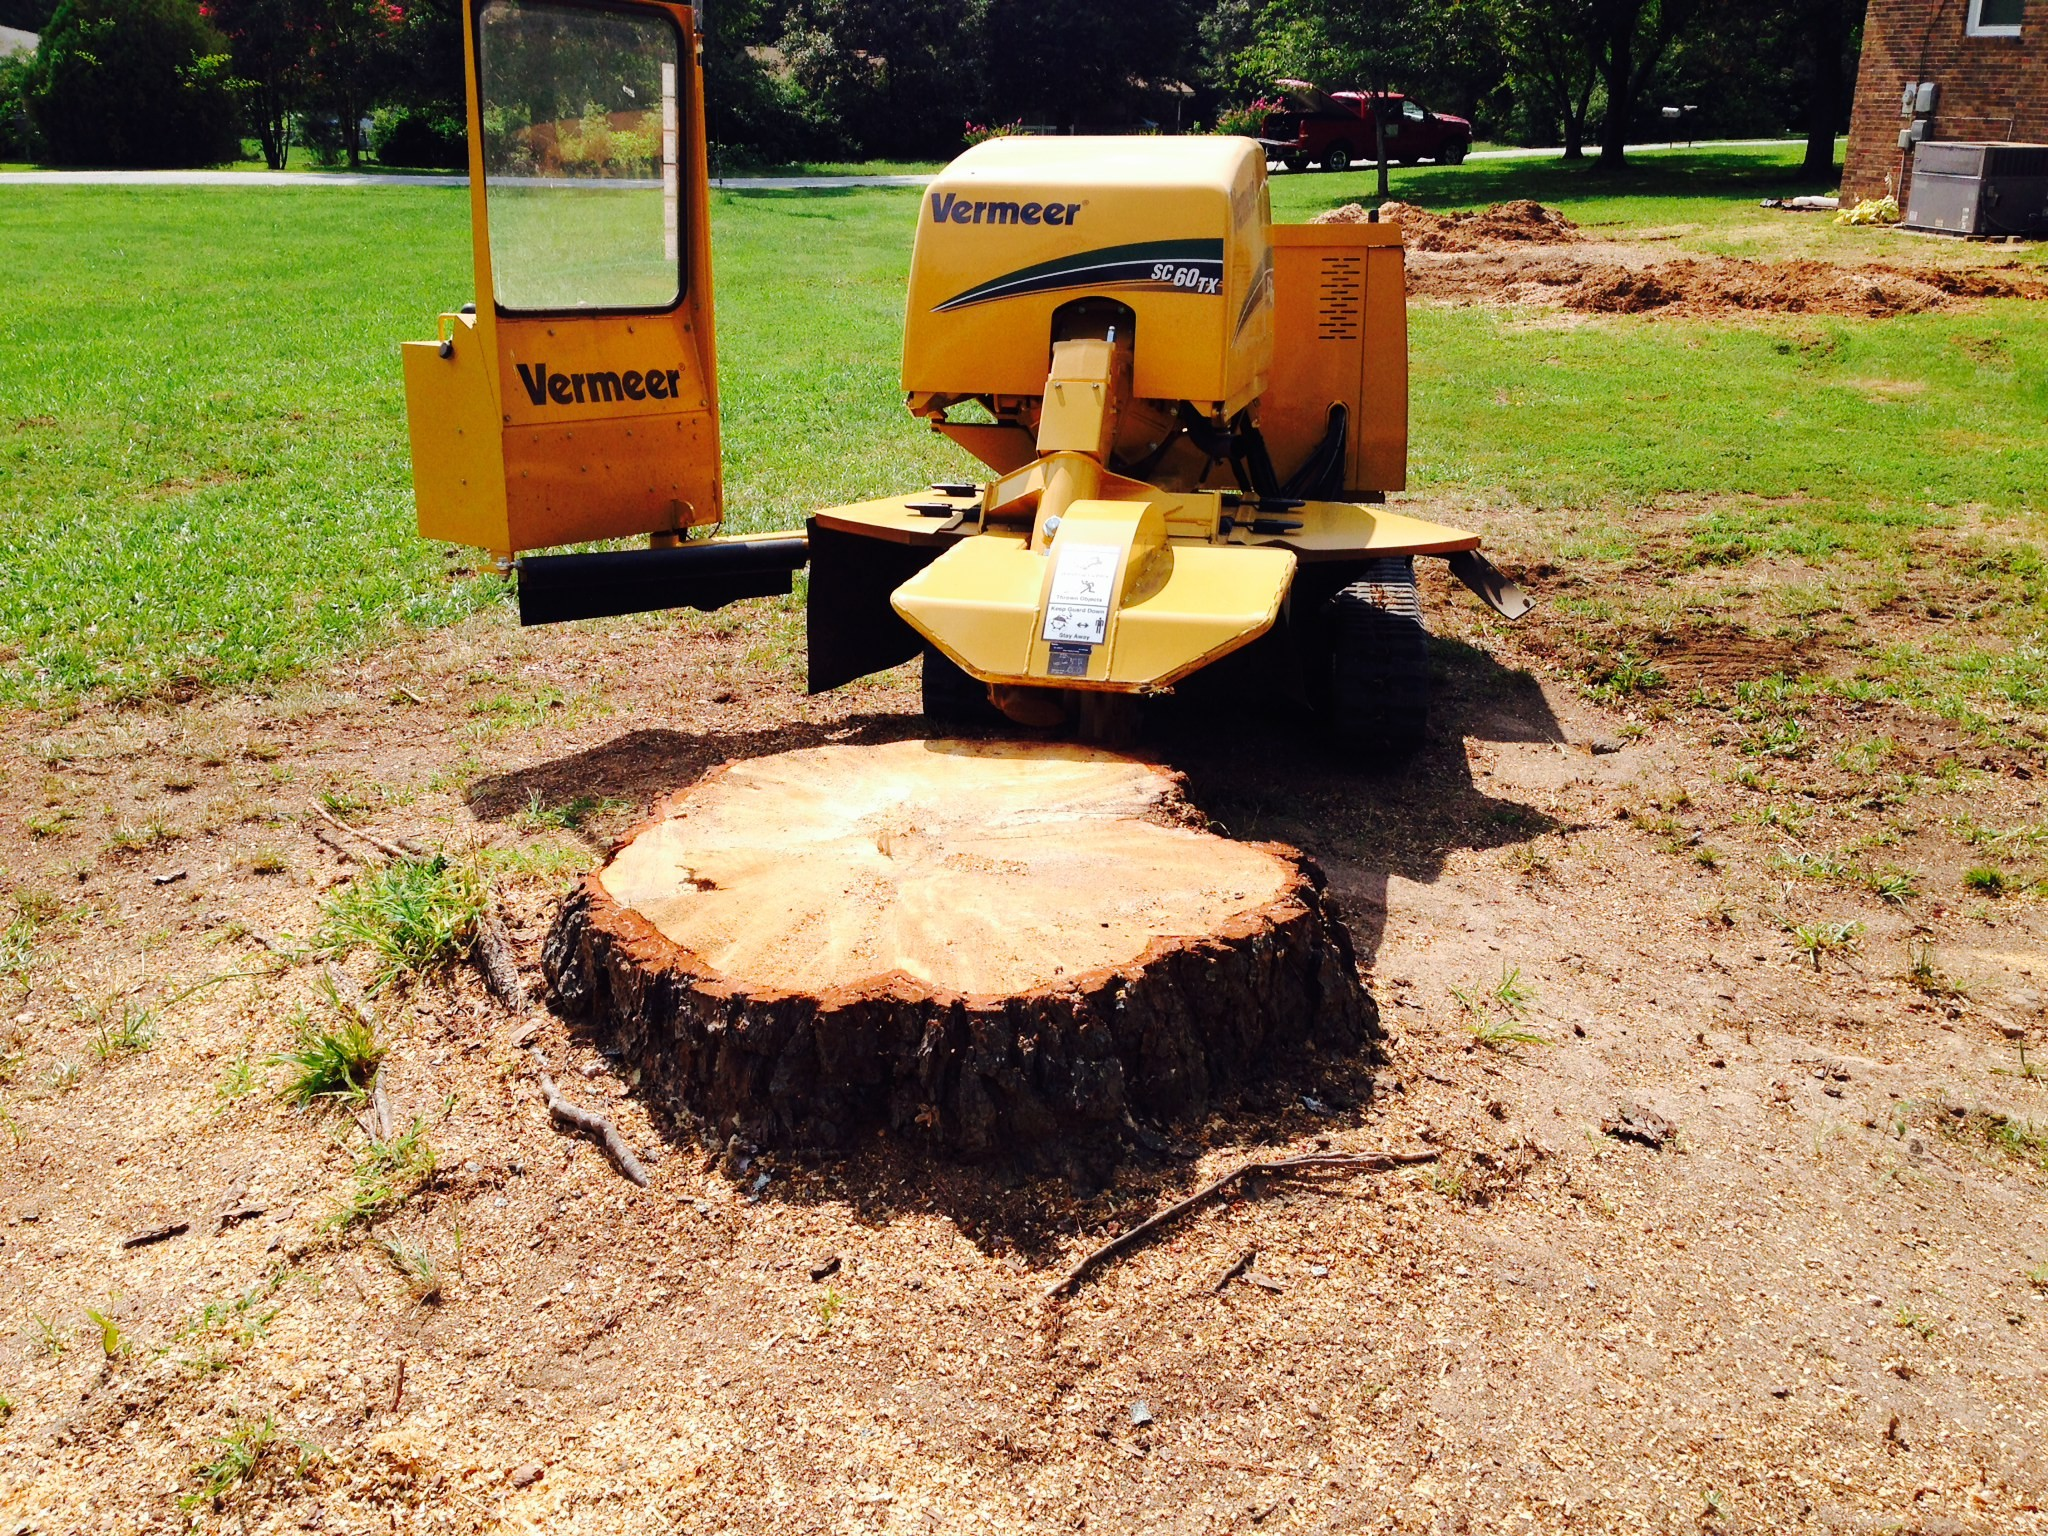 Cost for stump removal-Palm Beach County Tree Trimming and Tree Removal Services-We Offer Tree Trimming Services, Tree Removal, Tree Pruning, Tree Cutting, Residential and Commercial Tree Trimming Services, Storm Damage, Emergency Tree Removal, Land Clearing, Tree Companies, Tree Care Service, Stump Grinding, and we're the Best Tree Trimming Company Near You Guaranteed!